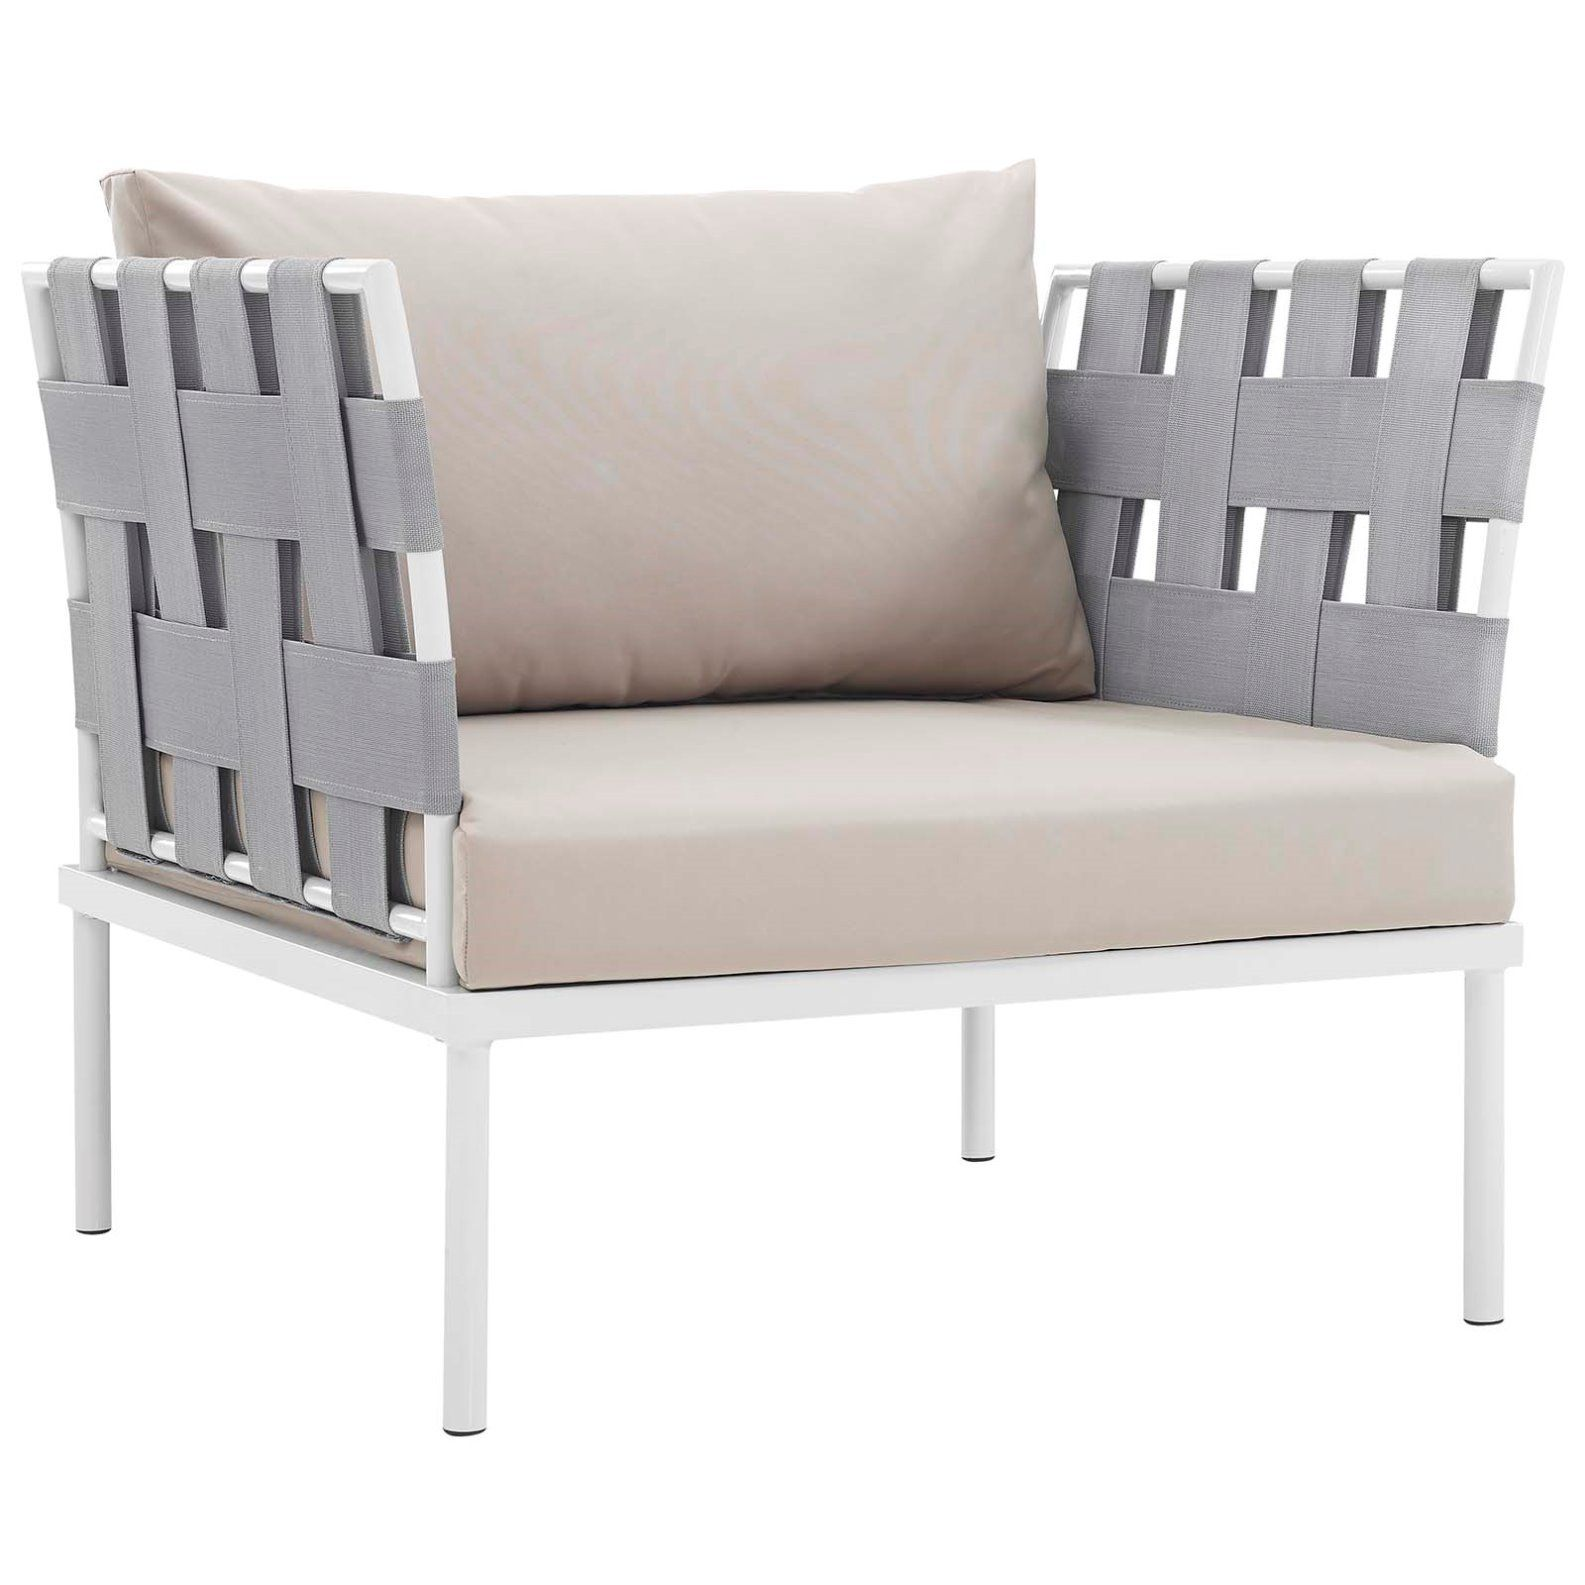 Modern Contemporary Urban Outdoor Patio Balcony Six Pcs Sectional Sofa Set Beige White Rat Patio Lounge Chairs Patio Furniture Dining Set Modern Furniture Sets